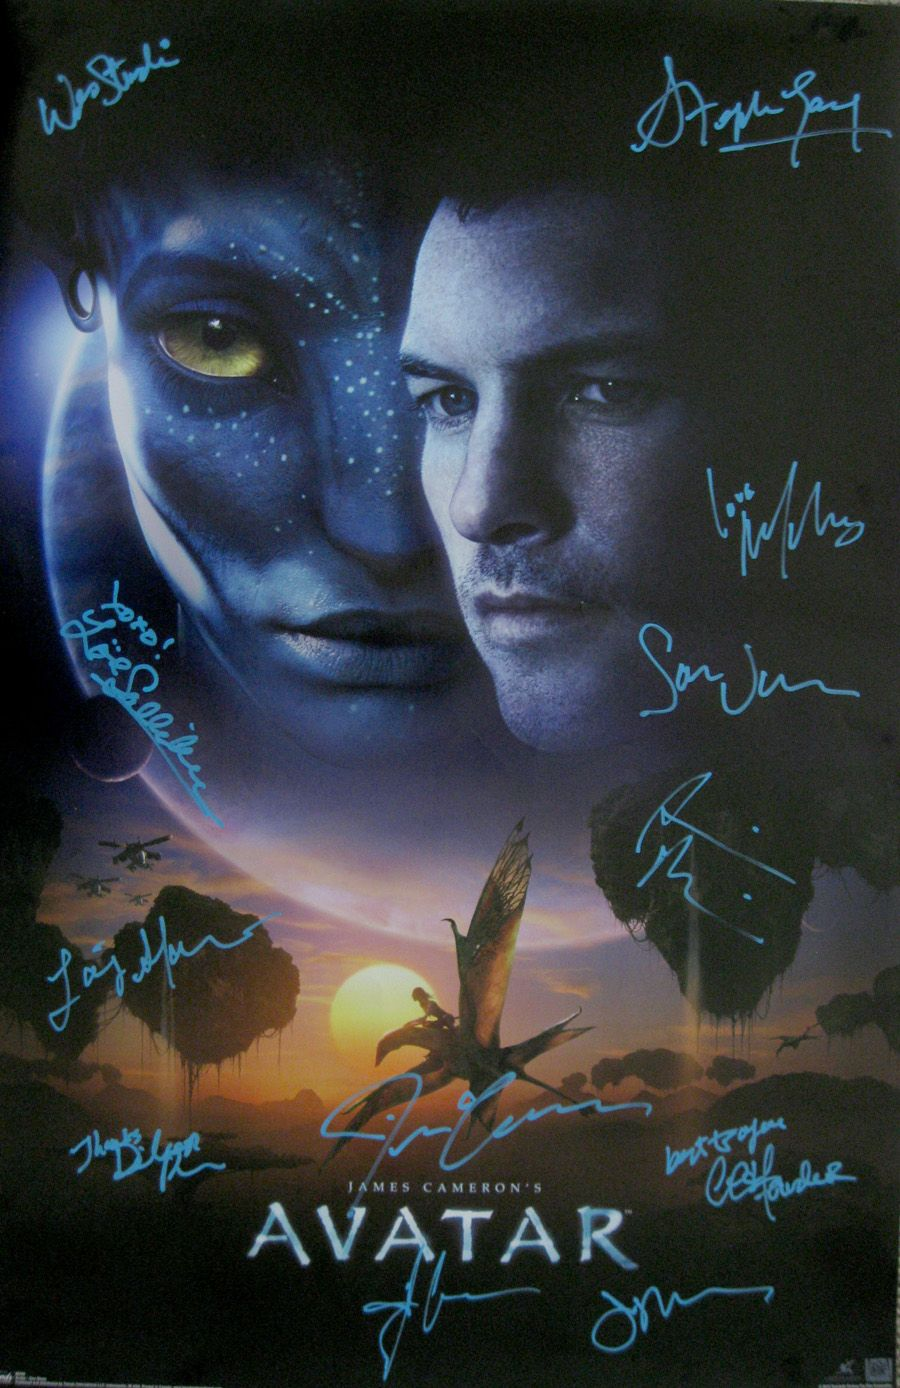 Avatar (2009) movie poster cast signed by James Cameron